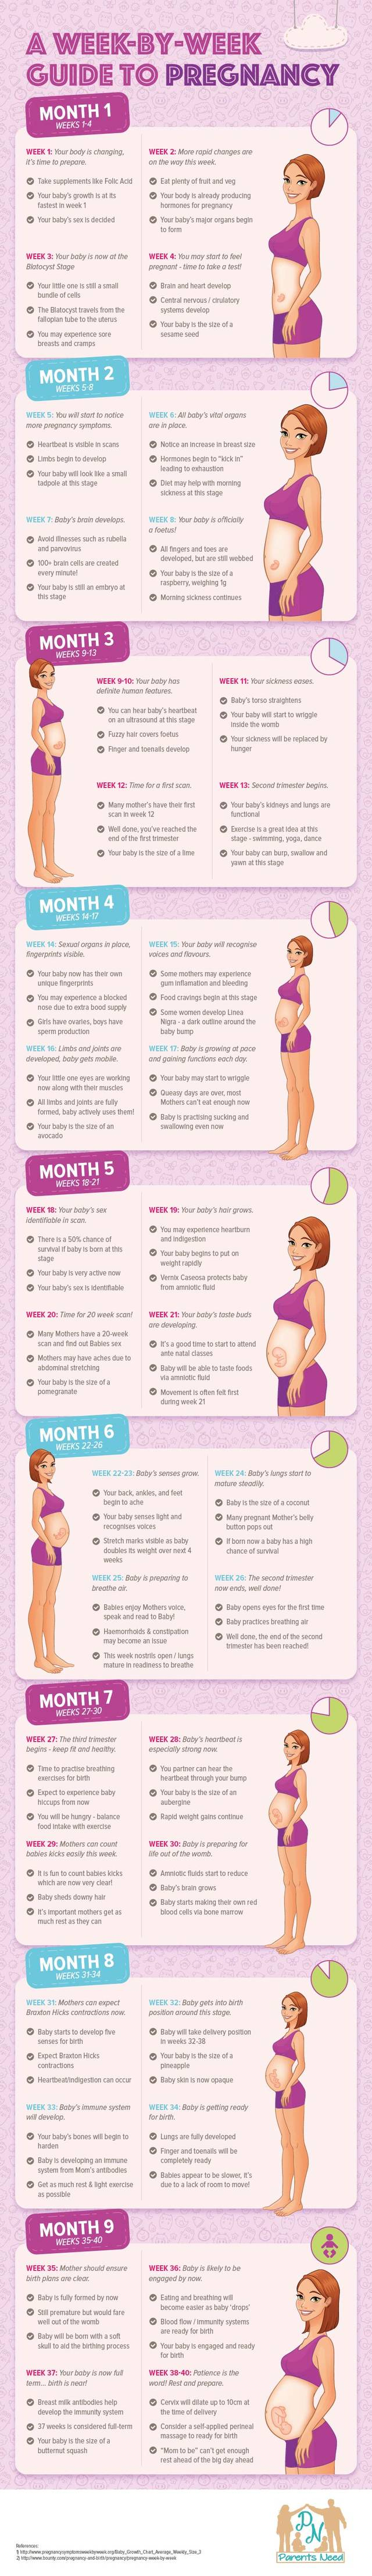 Parentsneed a week by week guide to pregnancy infographic